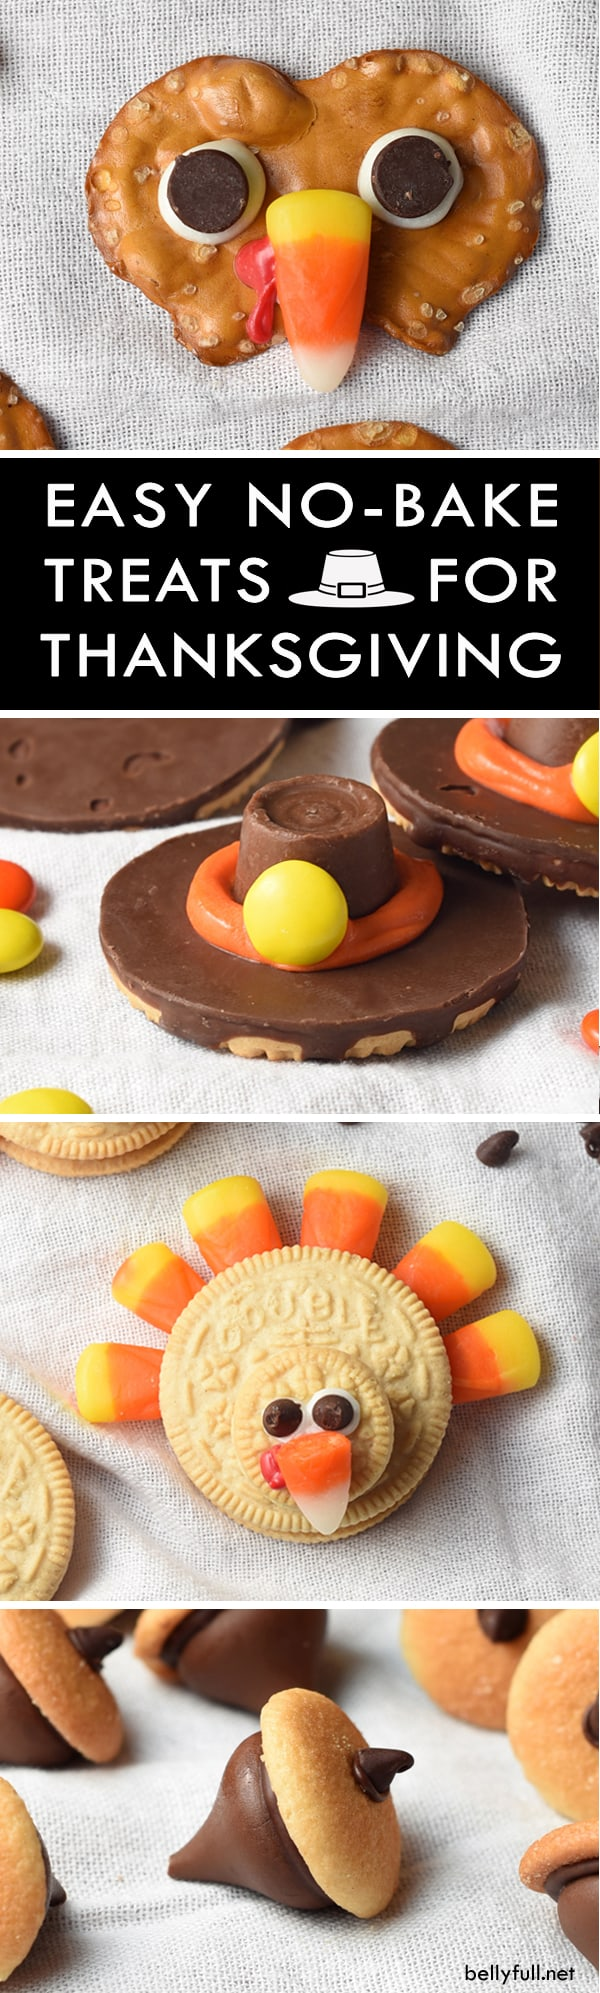 Pilgrim Cookie Hats, Chocolate Acorns, Pretzel Turkeys, and Oreo Turkeys are the cutest Thanksgiving treats! No oven required and they take only minutes to make!